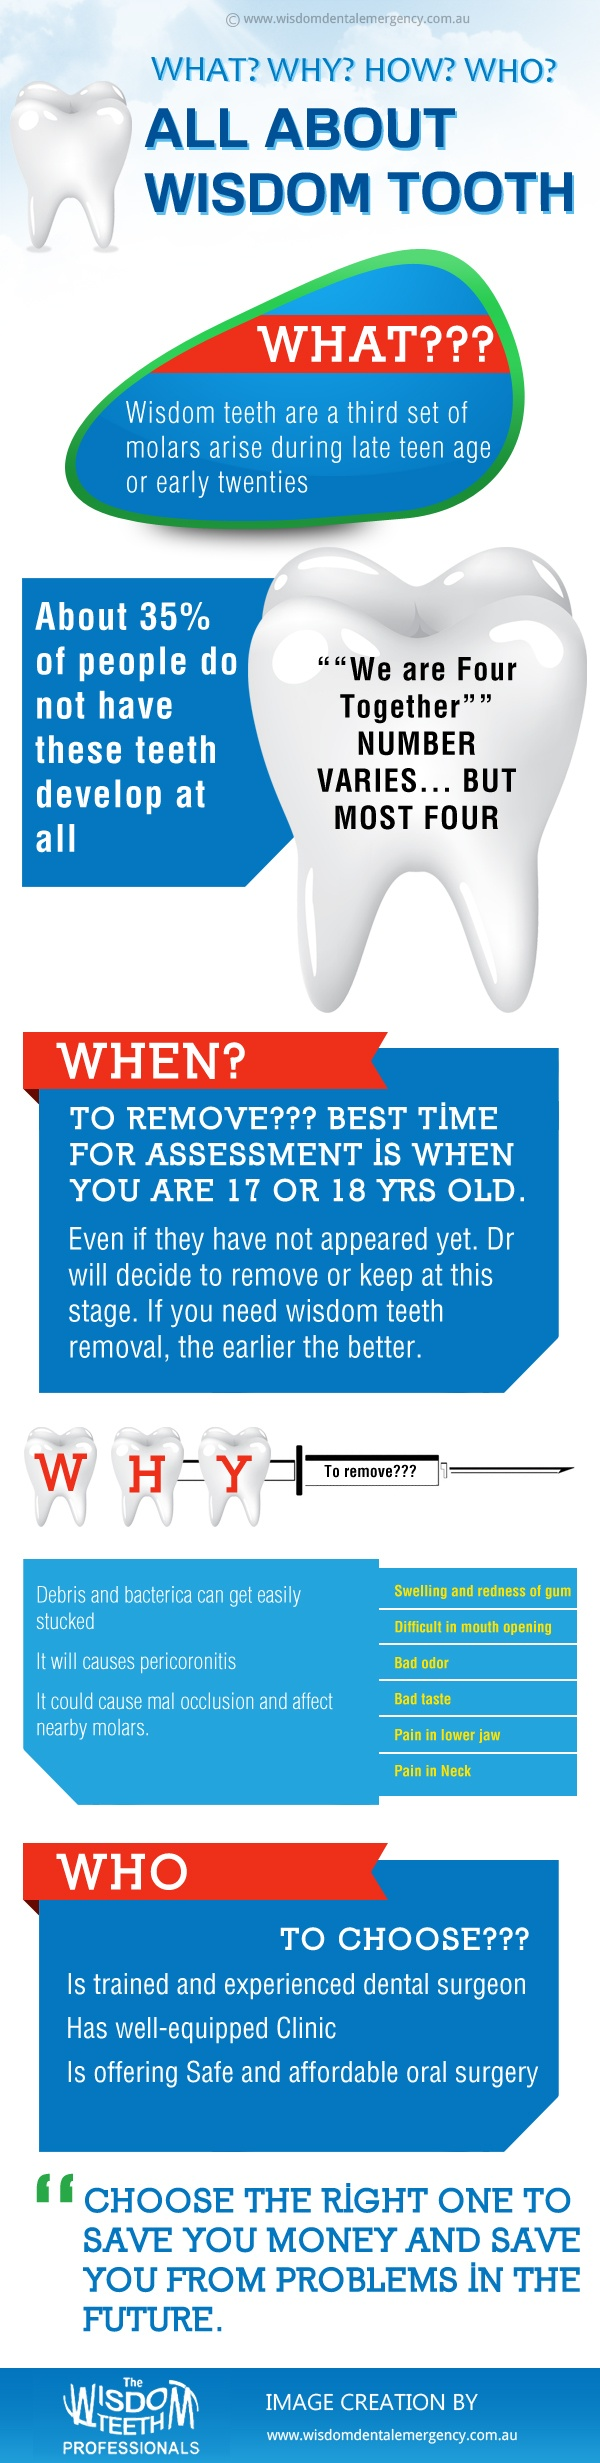 This infographic clearly explains the diet you need to consume for a few days after wisdom tooth removal. It also has information about the do's and don't after wisdom tooth removal as well.